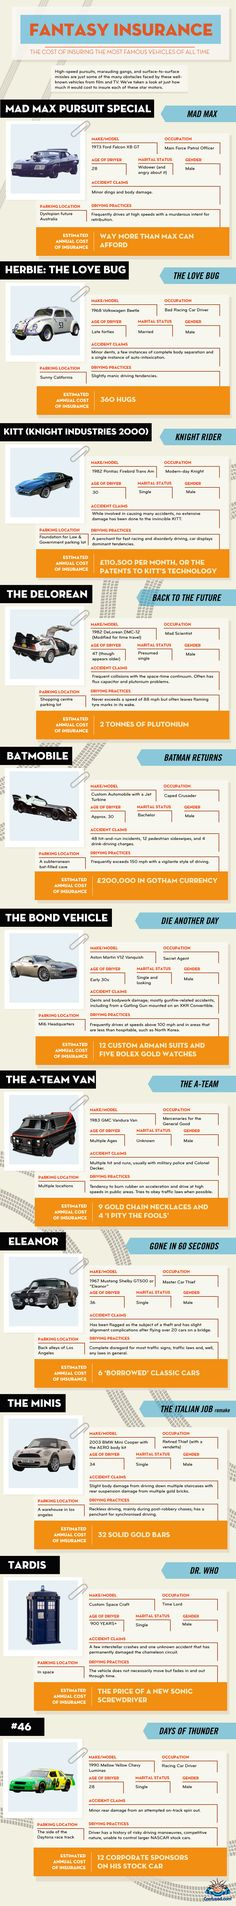 Fantasy car insurance: The cost of insuring the most famous vehicles of all time